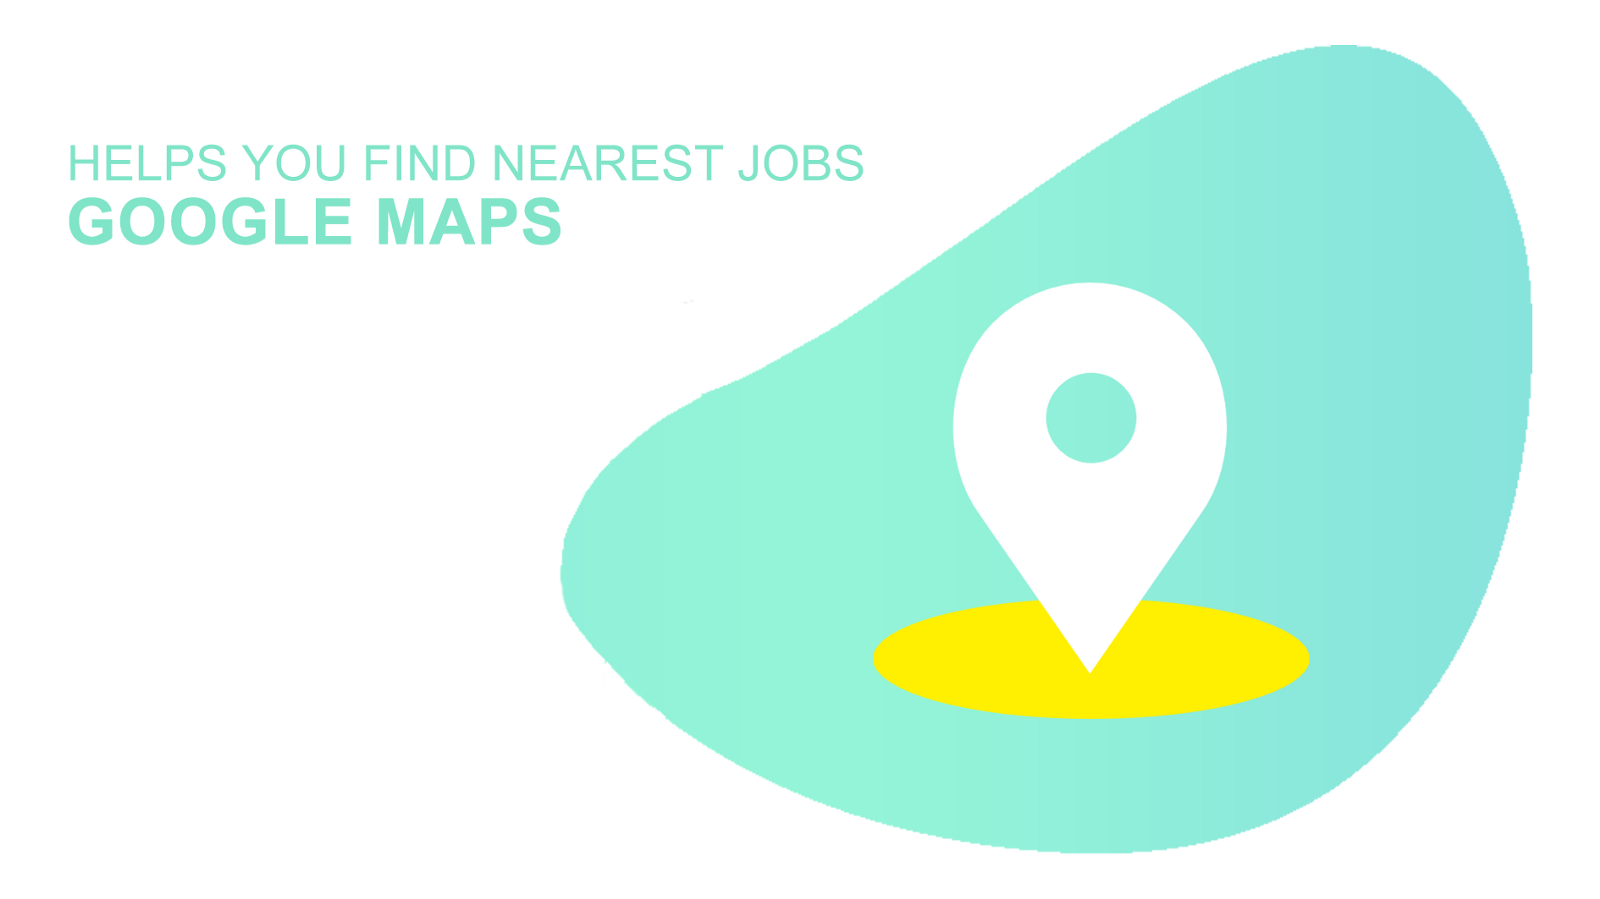 Google Maps help you find nearest jobs